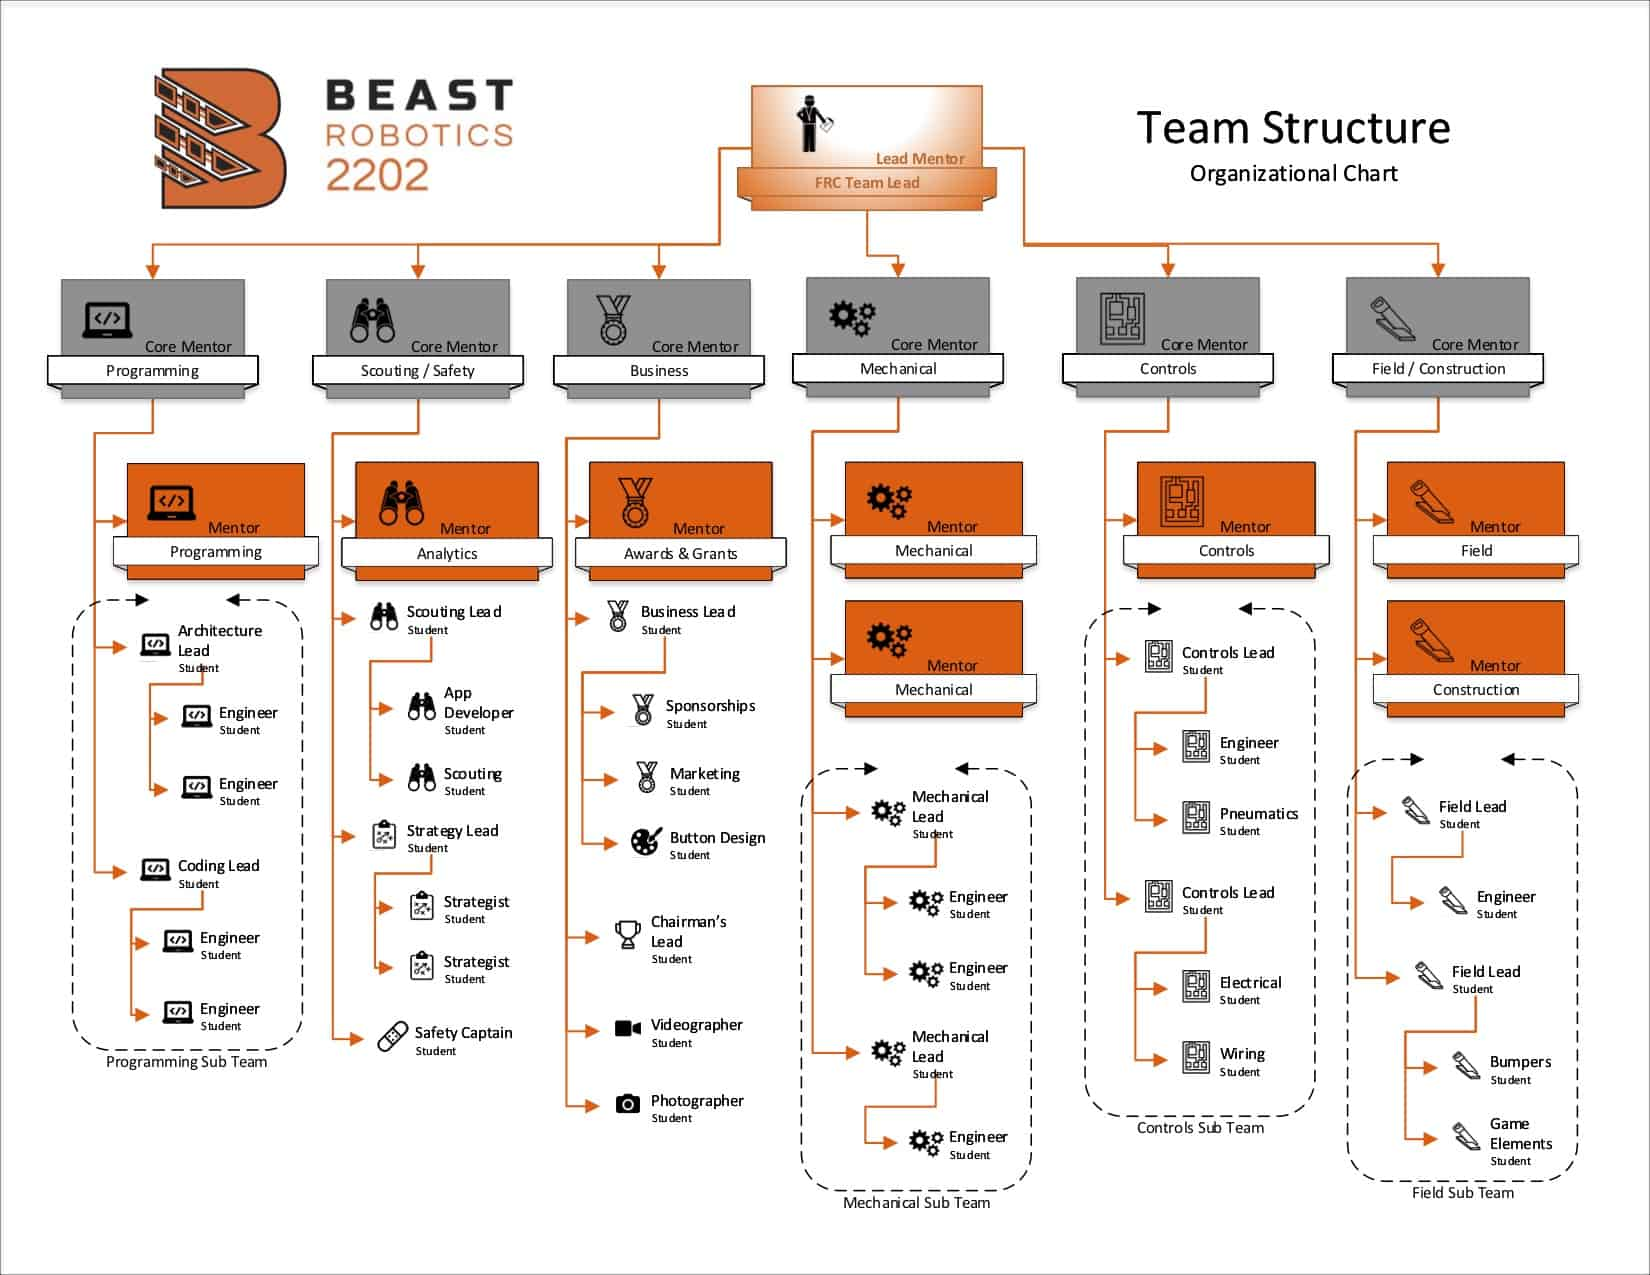 Organization chart of the subteams